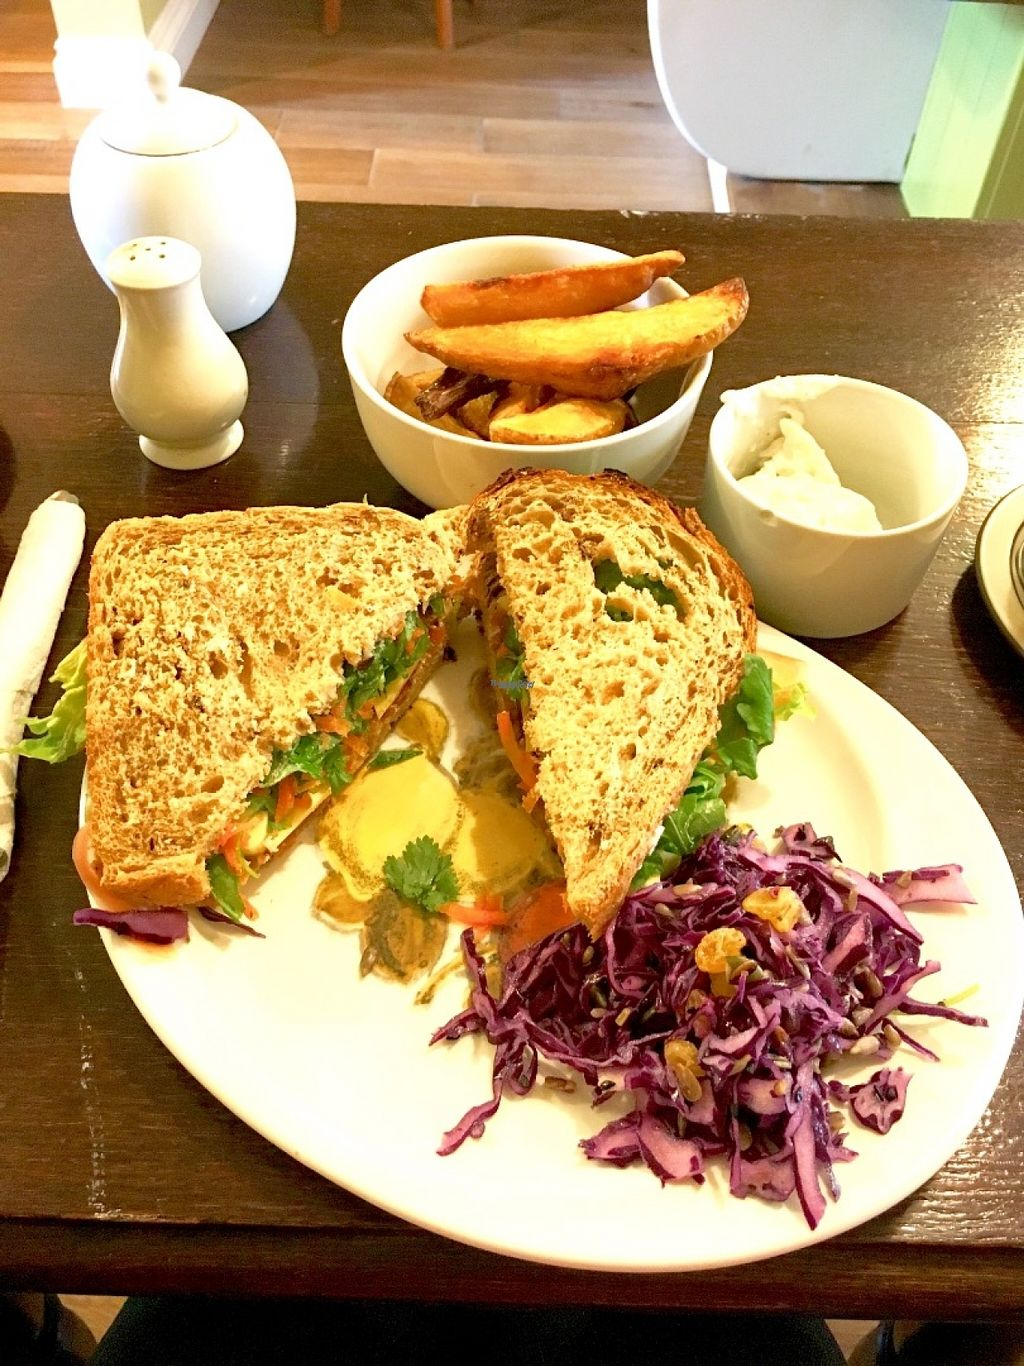 """Photo of Crocus Cafe  by <a href=""""/members/profile/Libra77"""">Libra77</a> <br/>Vegan ploughmans sandwich with wedges <br/> October 30, 2016  - <a href='/contact/abuse/image/10169/185384'>Report</a>"""